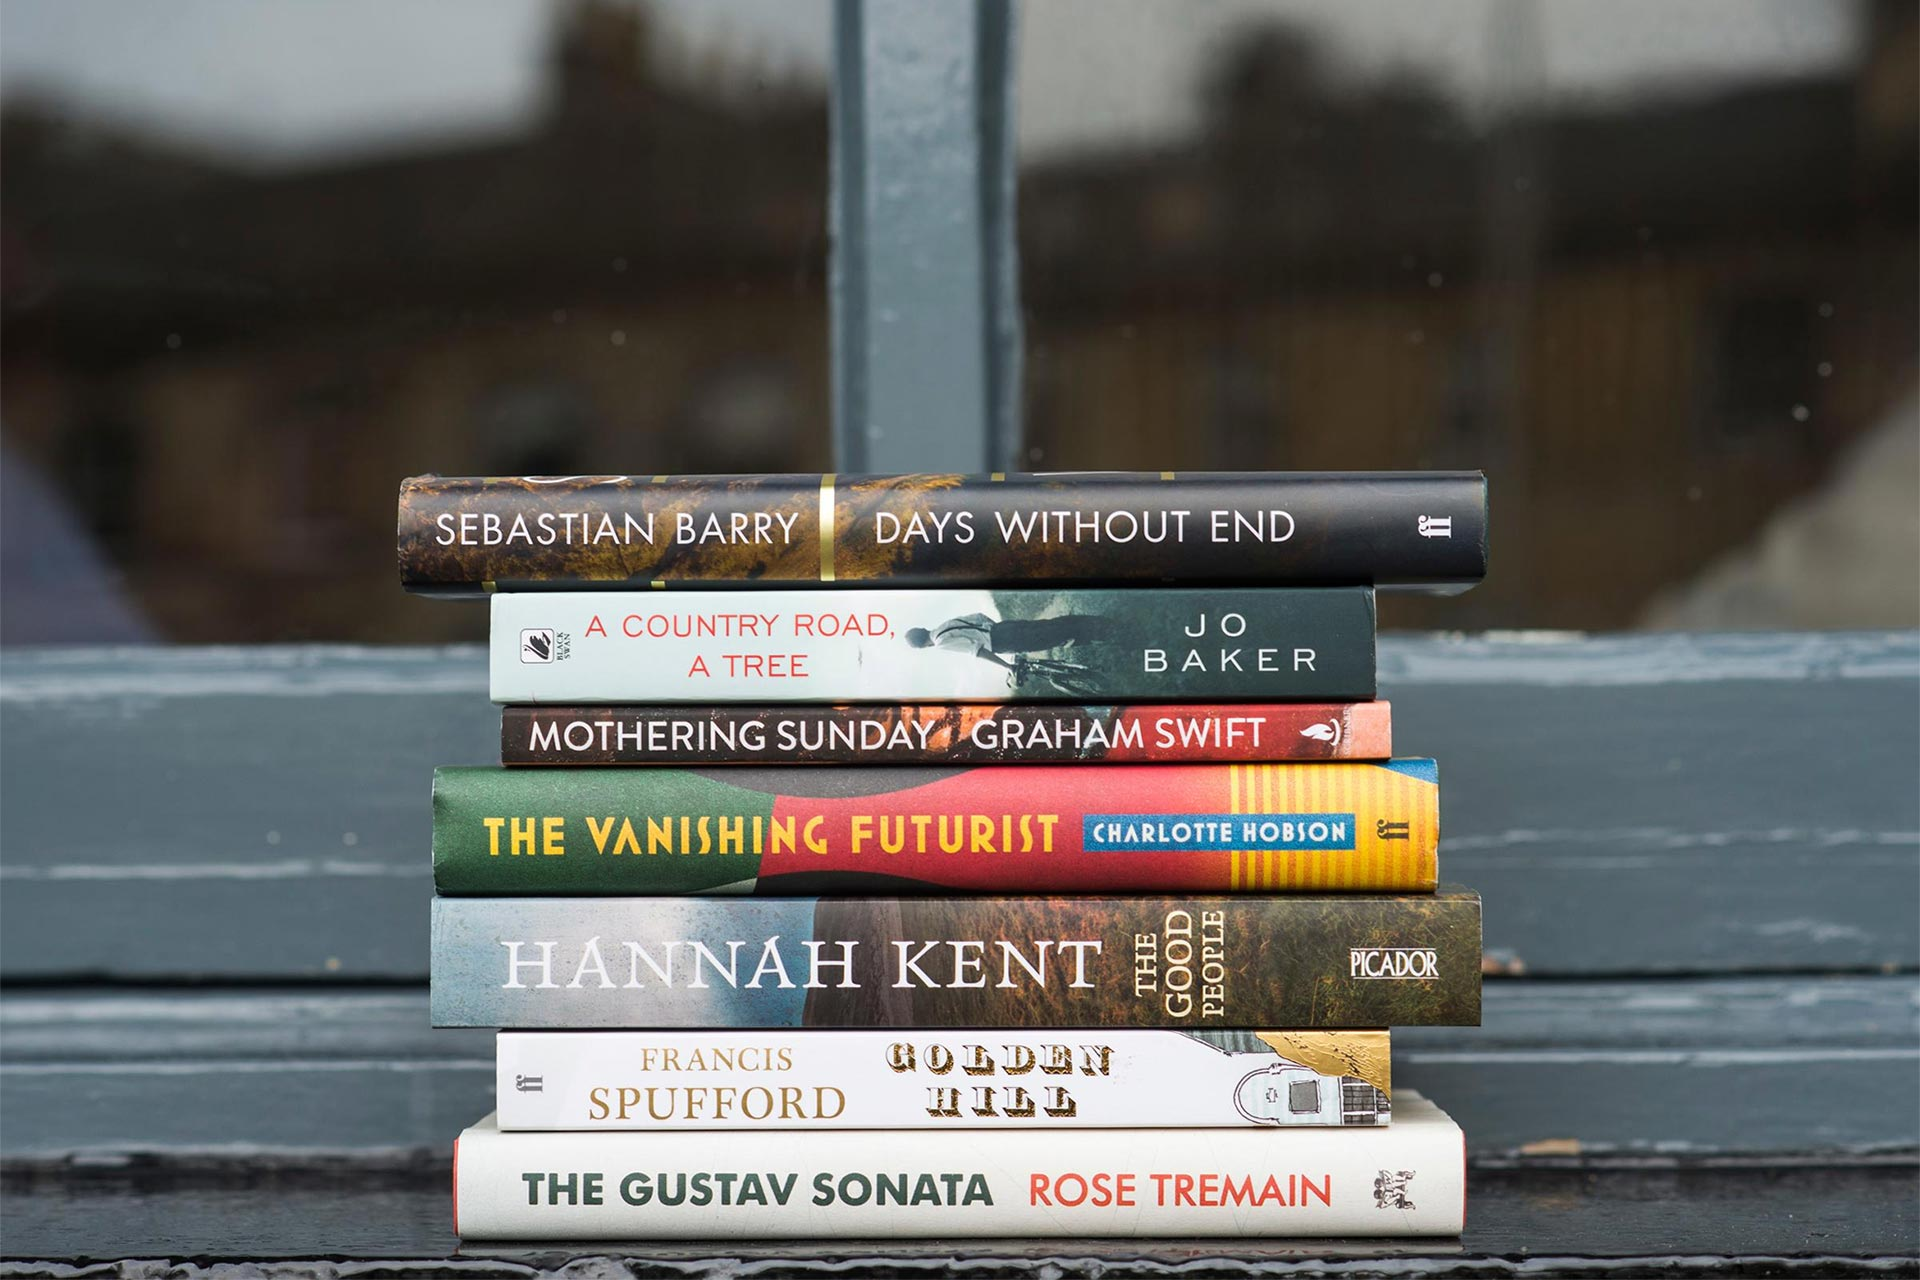 The Walter Scott Prize for Historical Fiction